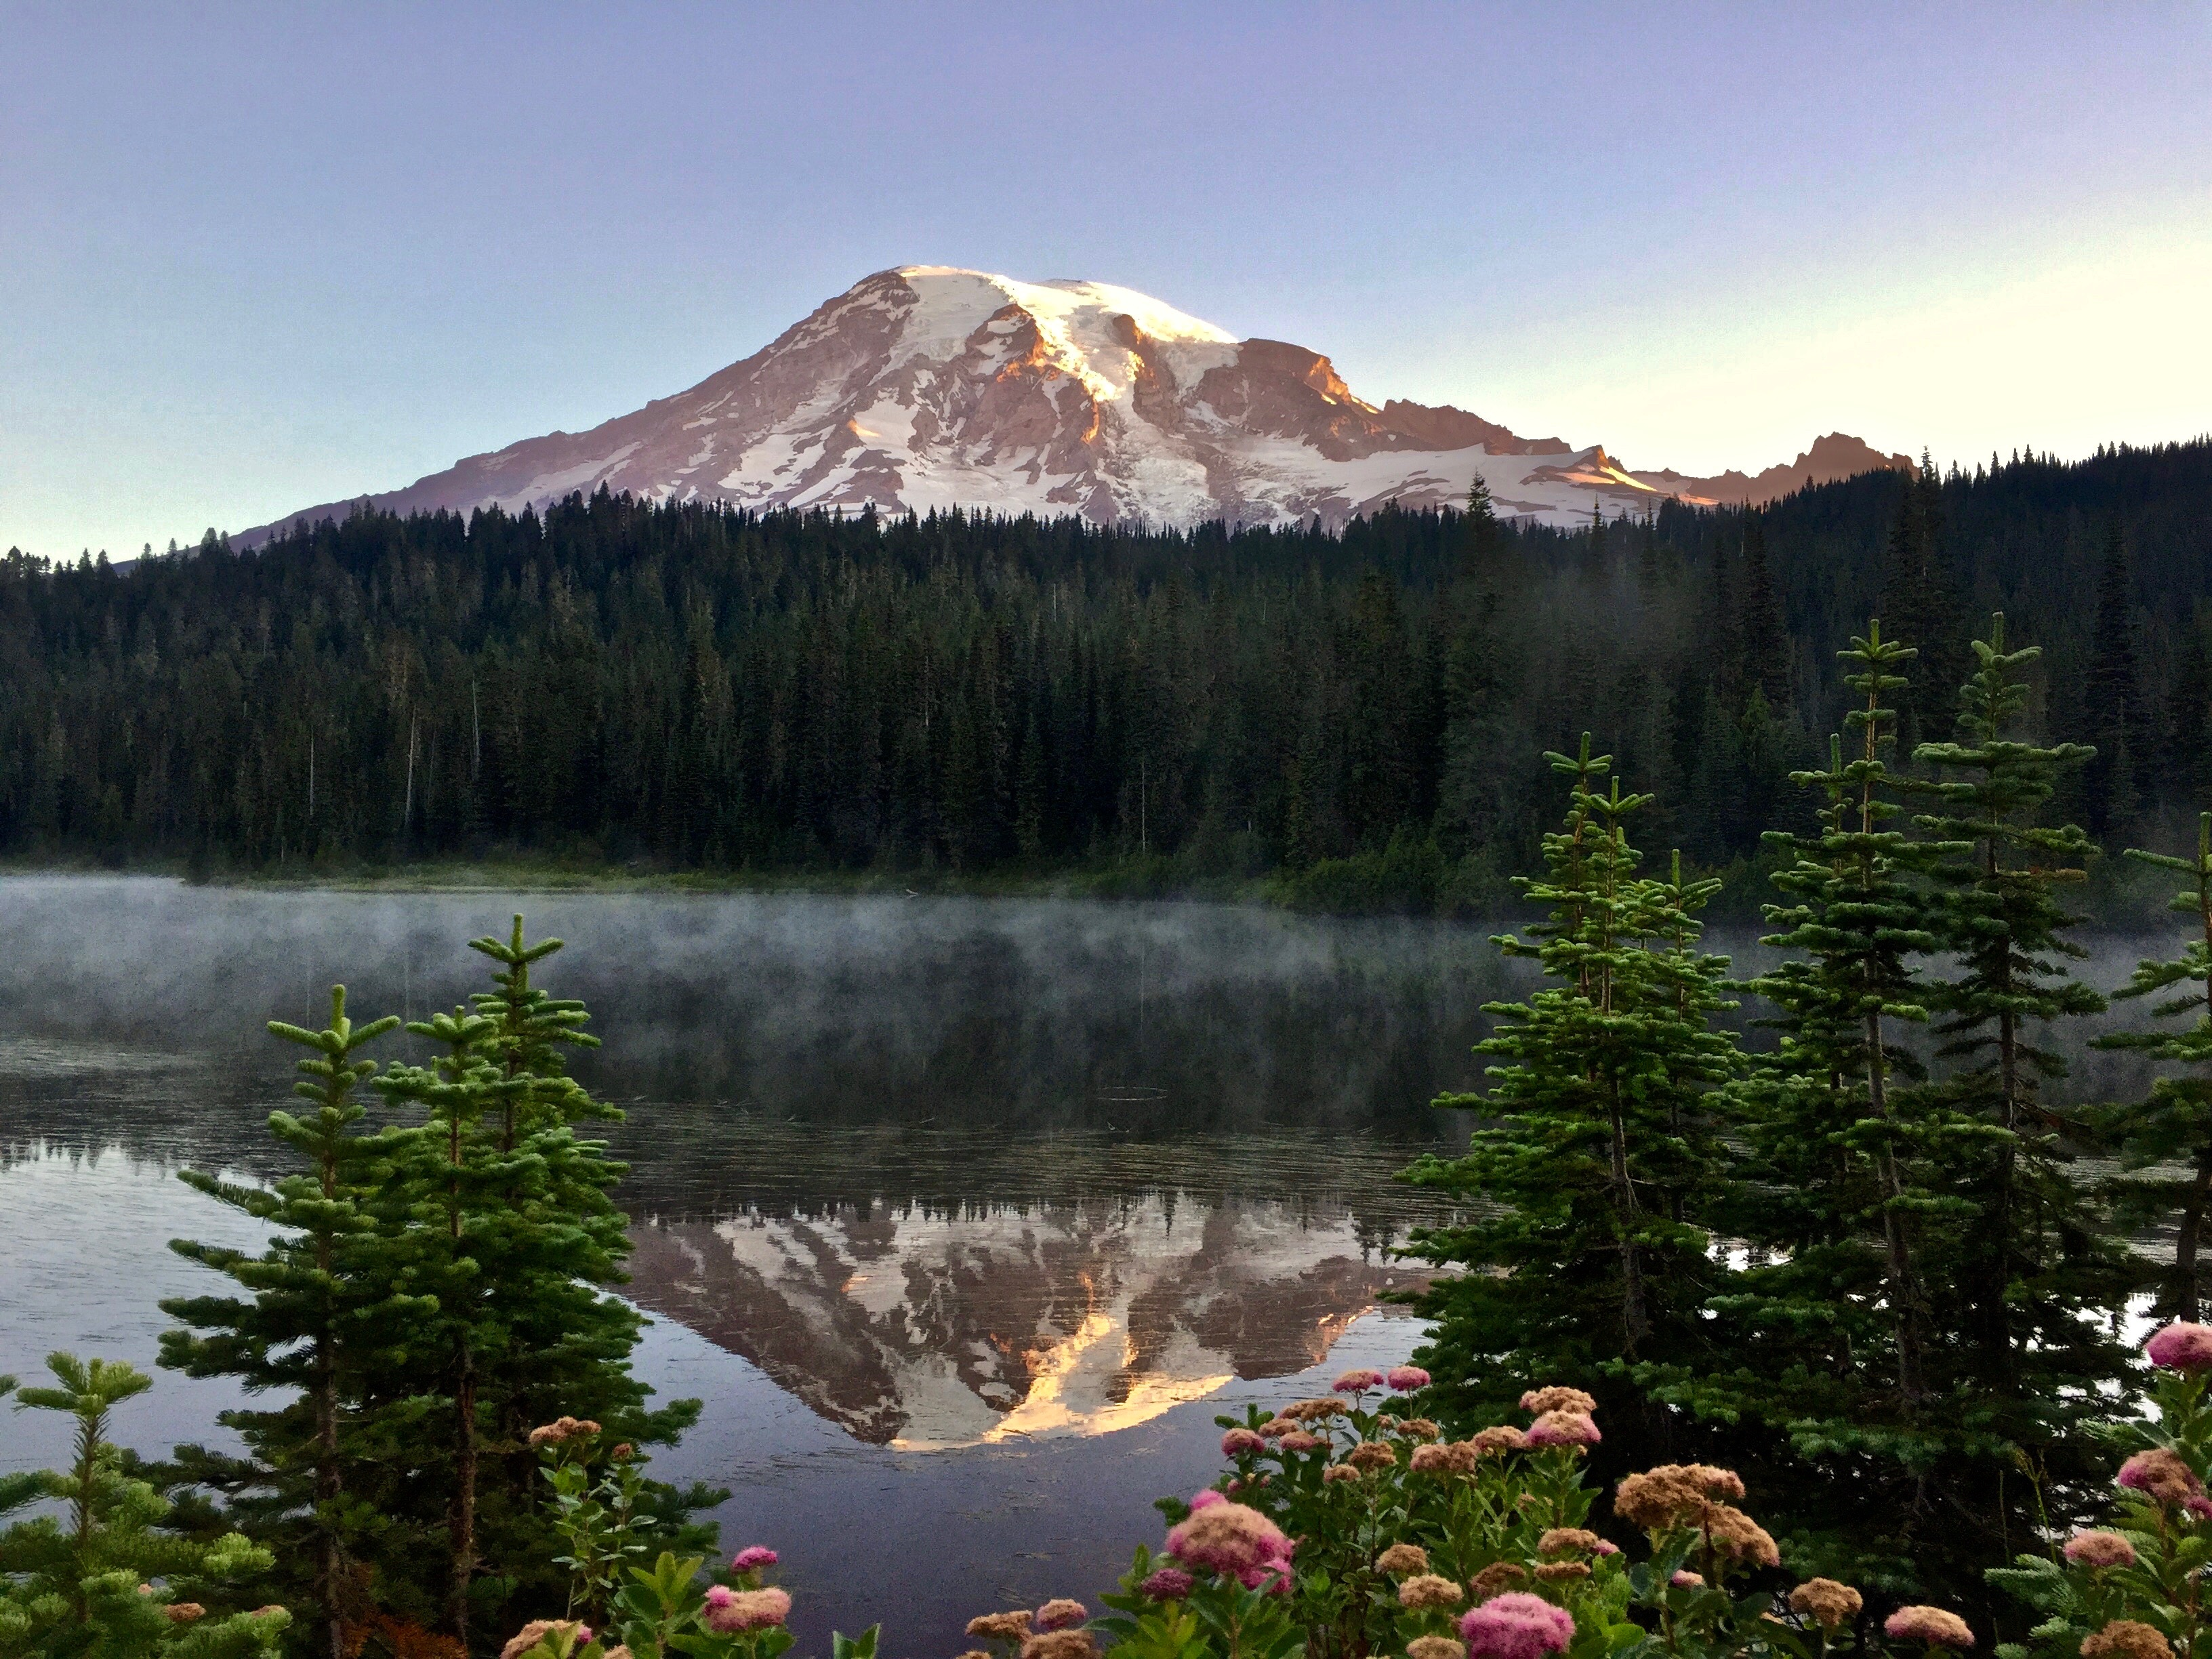 Mountain reflected majestically on the surface of a serene lake.